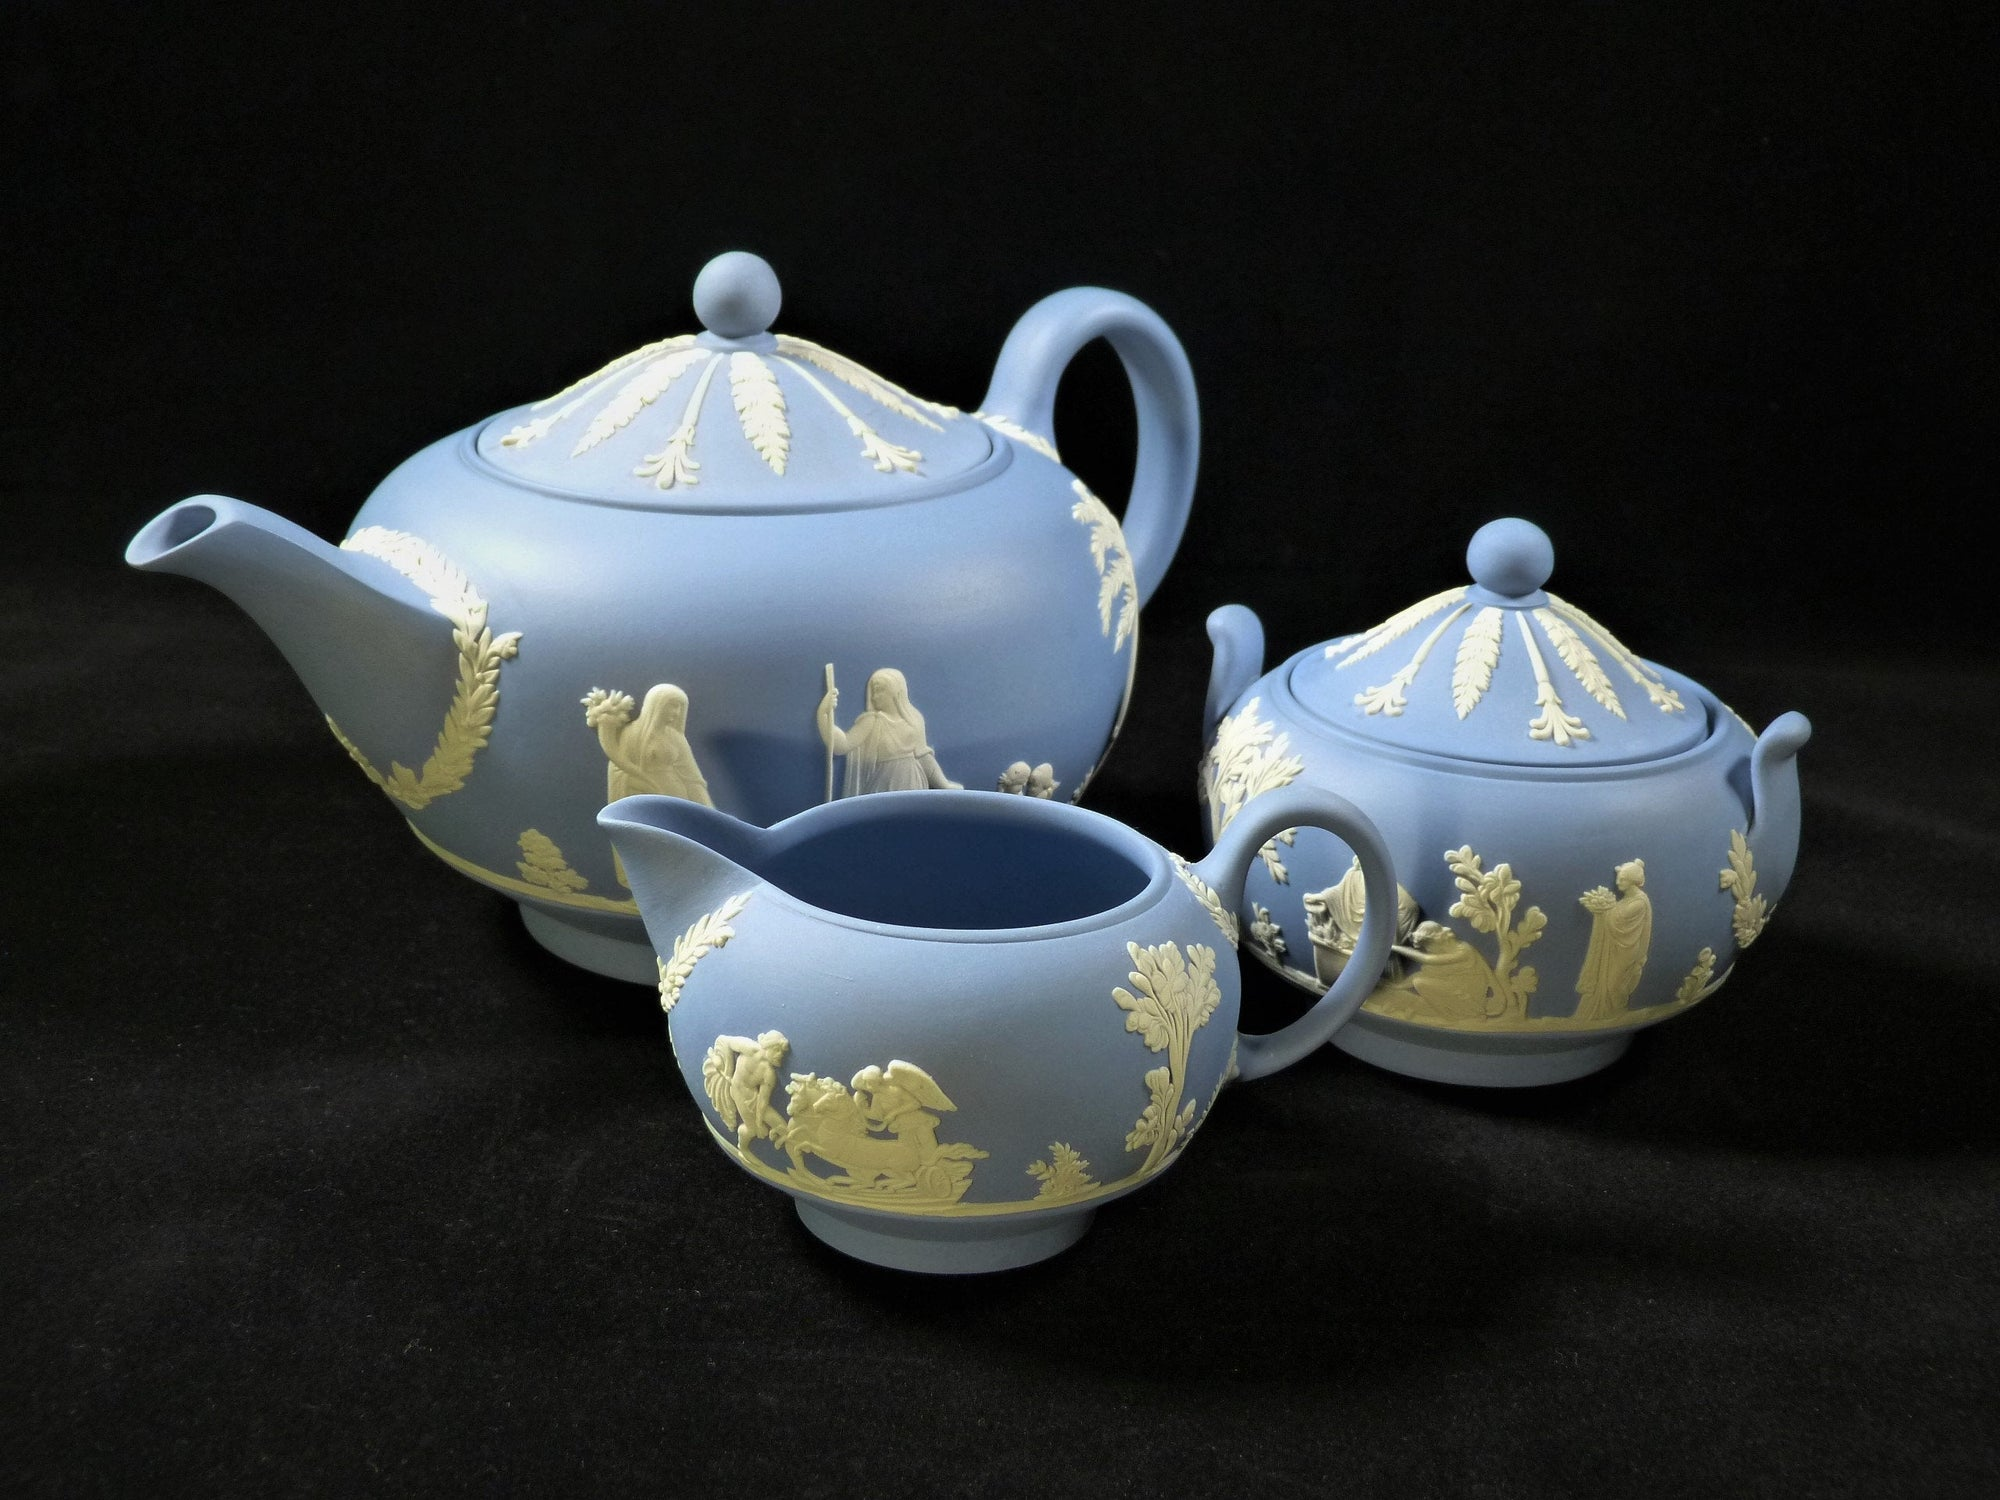 Wedgwood Jasperware Blue Teapot, Creamer and Sugar, Full Size, Superb Set